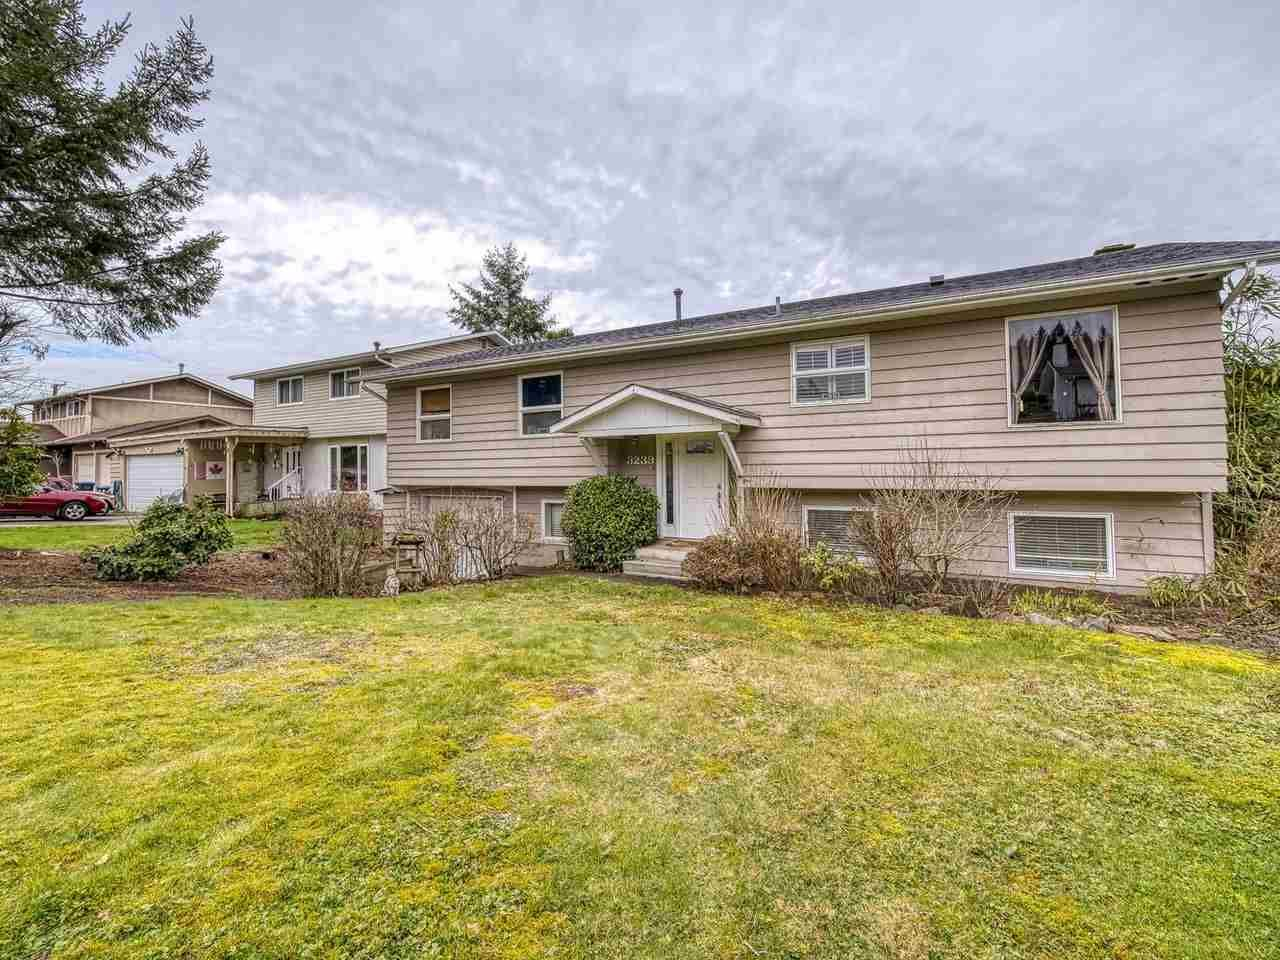 Main Photo: 3239 PORTVIEW Place in Port Moody: Port Moody Centre House for sale : MLS®# R2544230